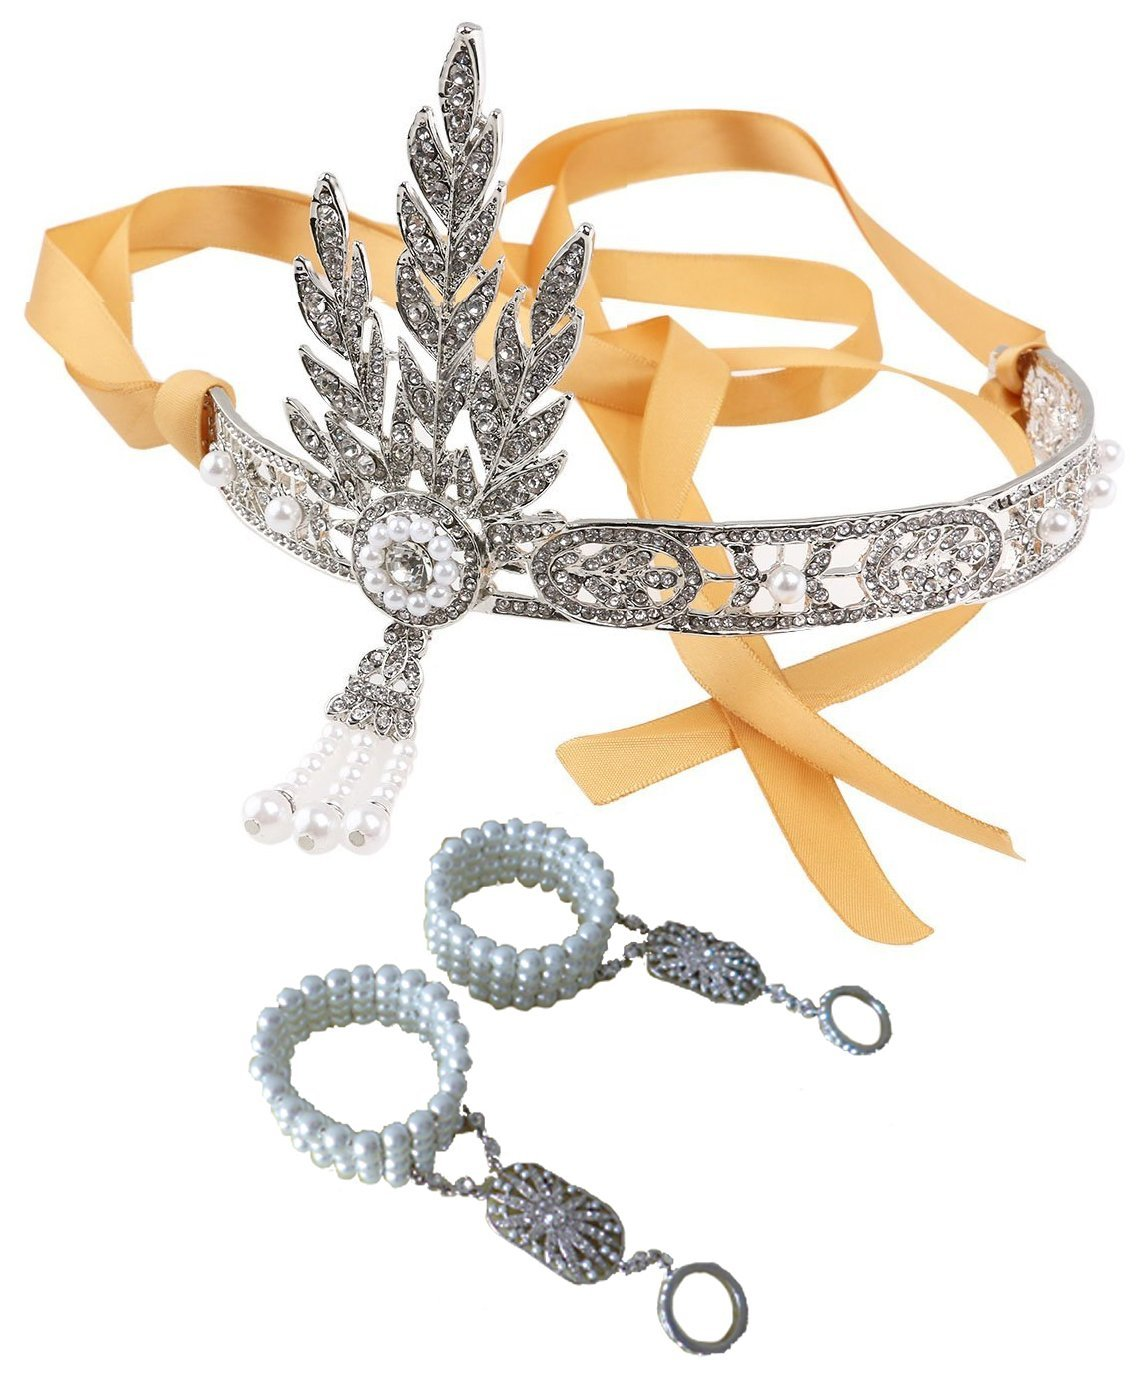 TOKYO-T Great Gatsby Headpieces for Women Tiara with 2 Pearl Bracelets Set Flapper Headband Wedding Bridal by TOKYO-T